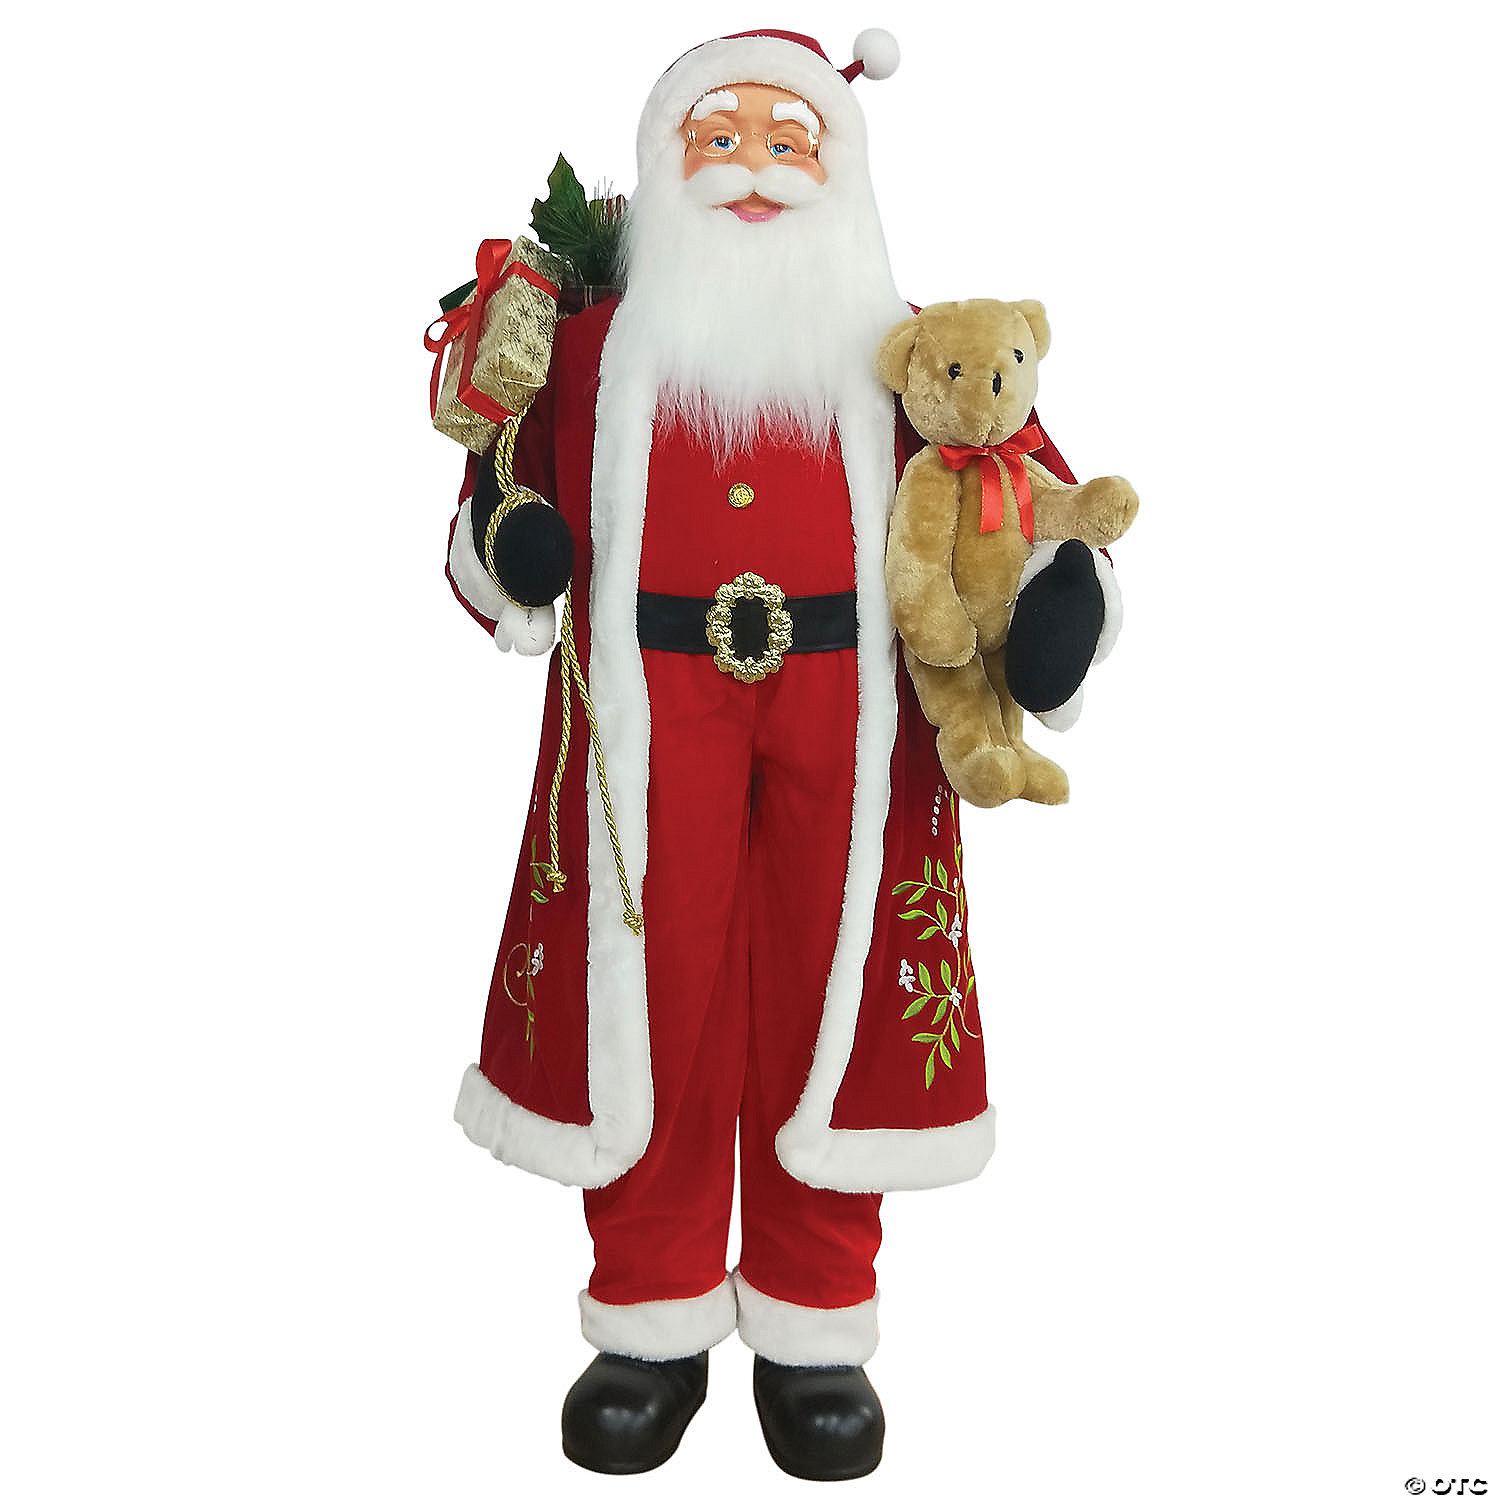 Northlight 5 Life Size Standing Santa Claus Christmas Figure With Teddy Bear And Gift Bag Oriental Trading